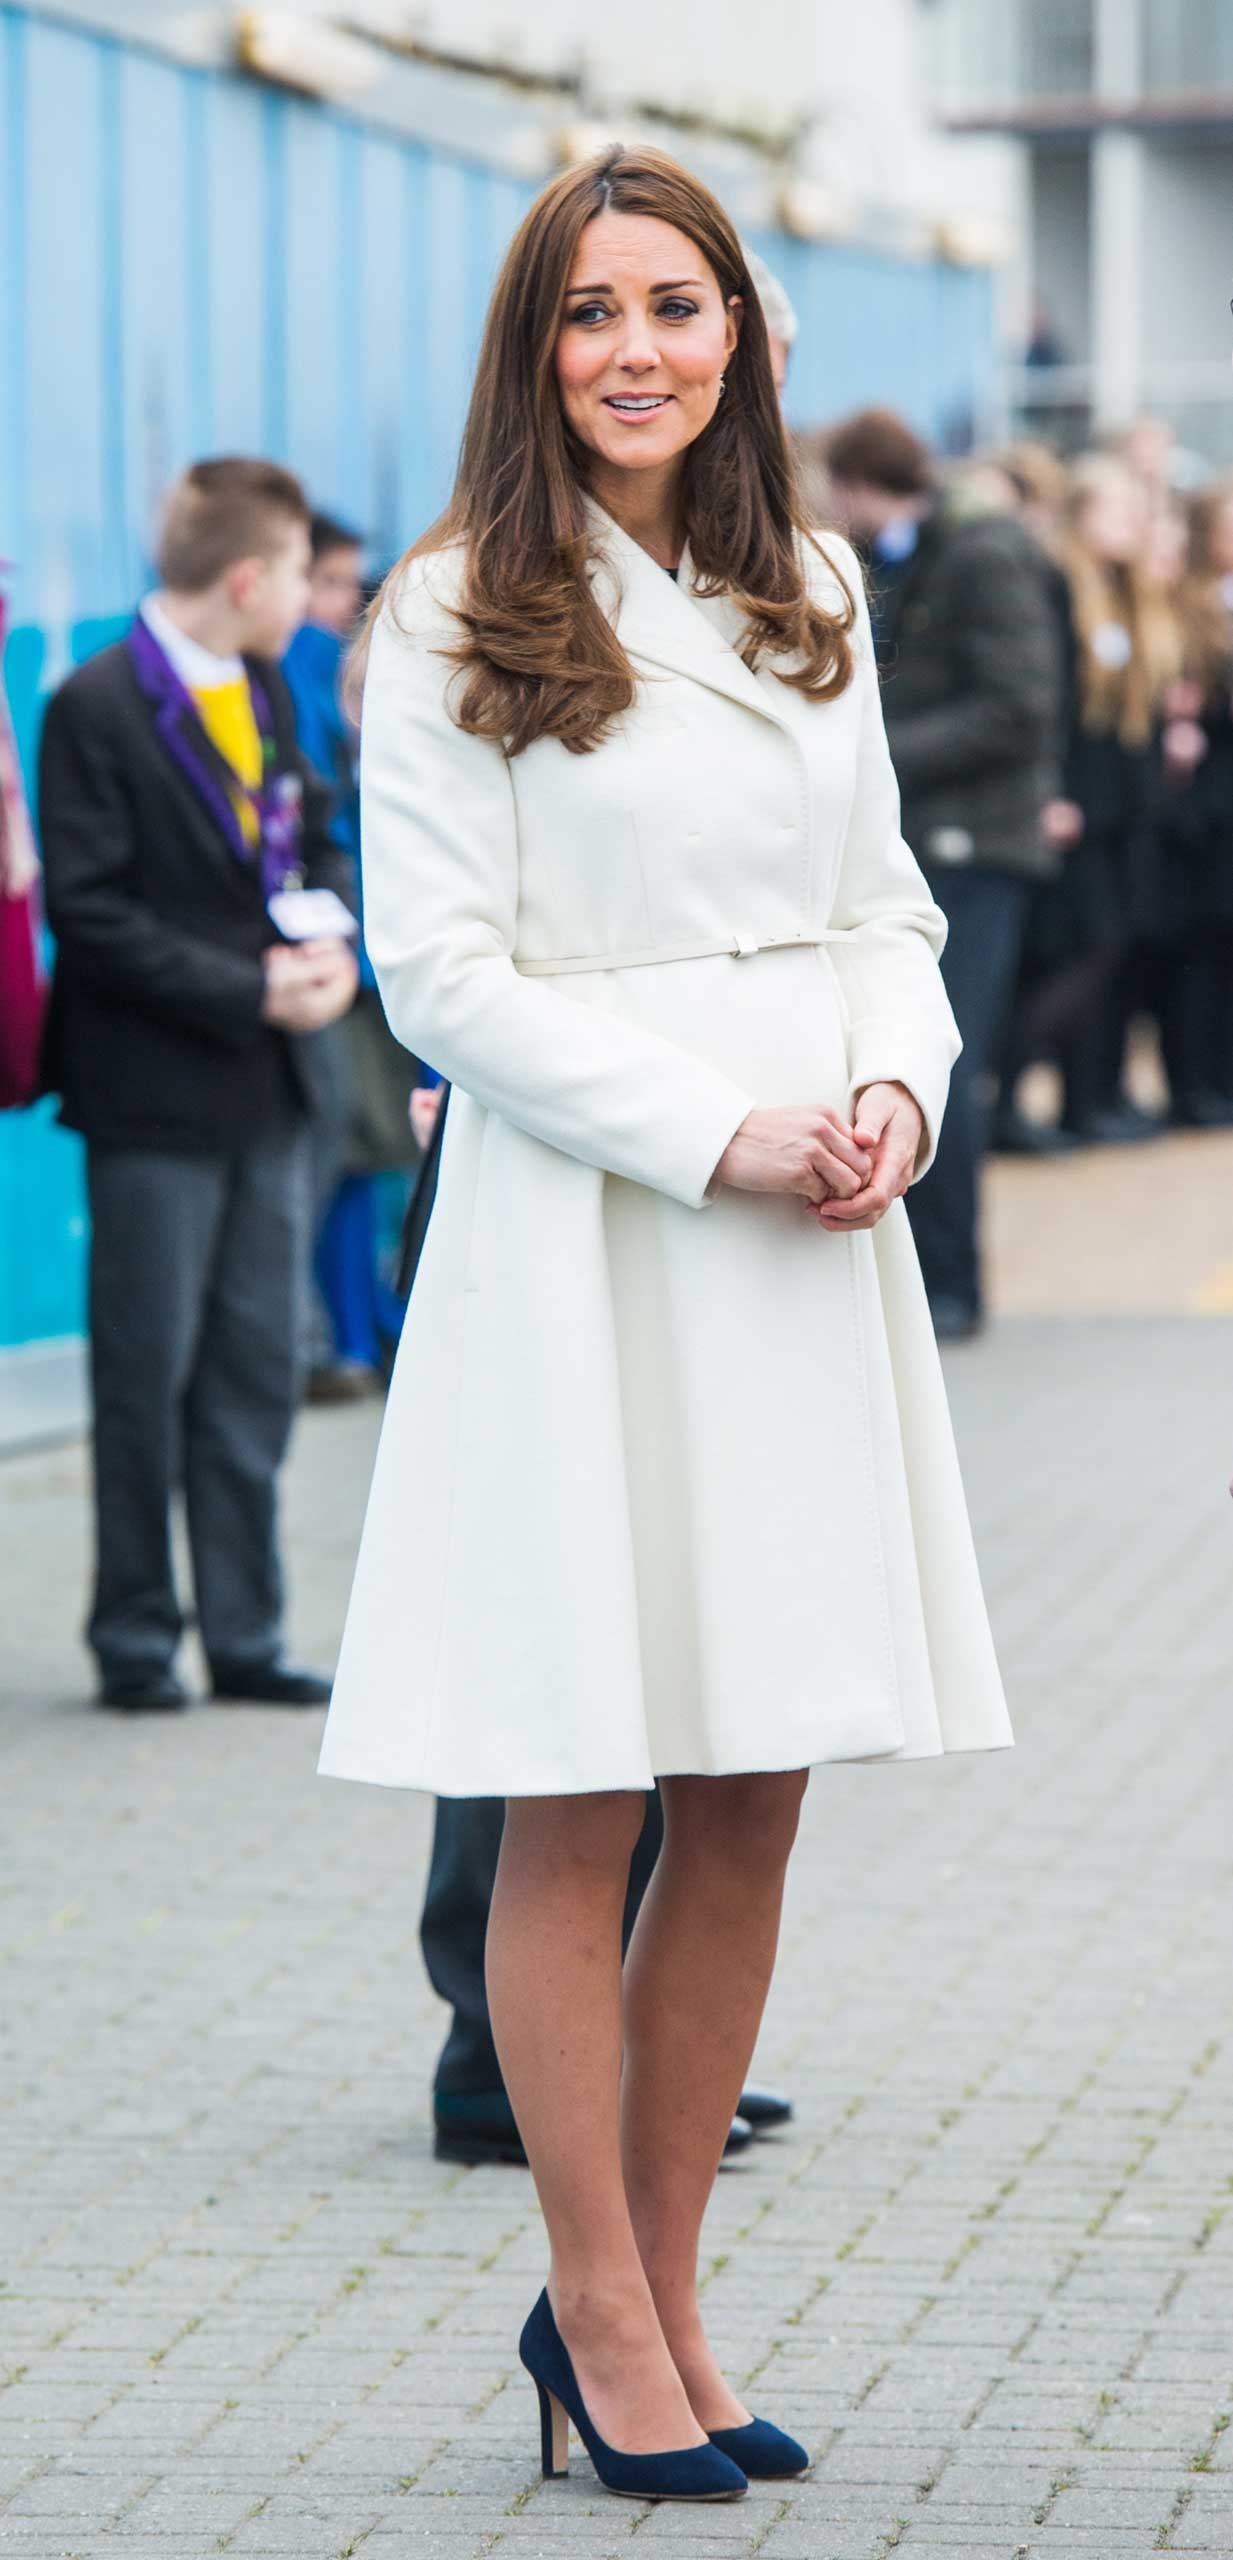 Catherine, Duchess of Cambridge  visits the new home of Ben Ainslie Racing and the 1851 Trust to view an art project by the local community on February 12, 2015 in Portsmouth, England.  (Photo by Samir Hussein/WireImage)